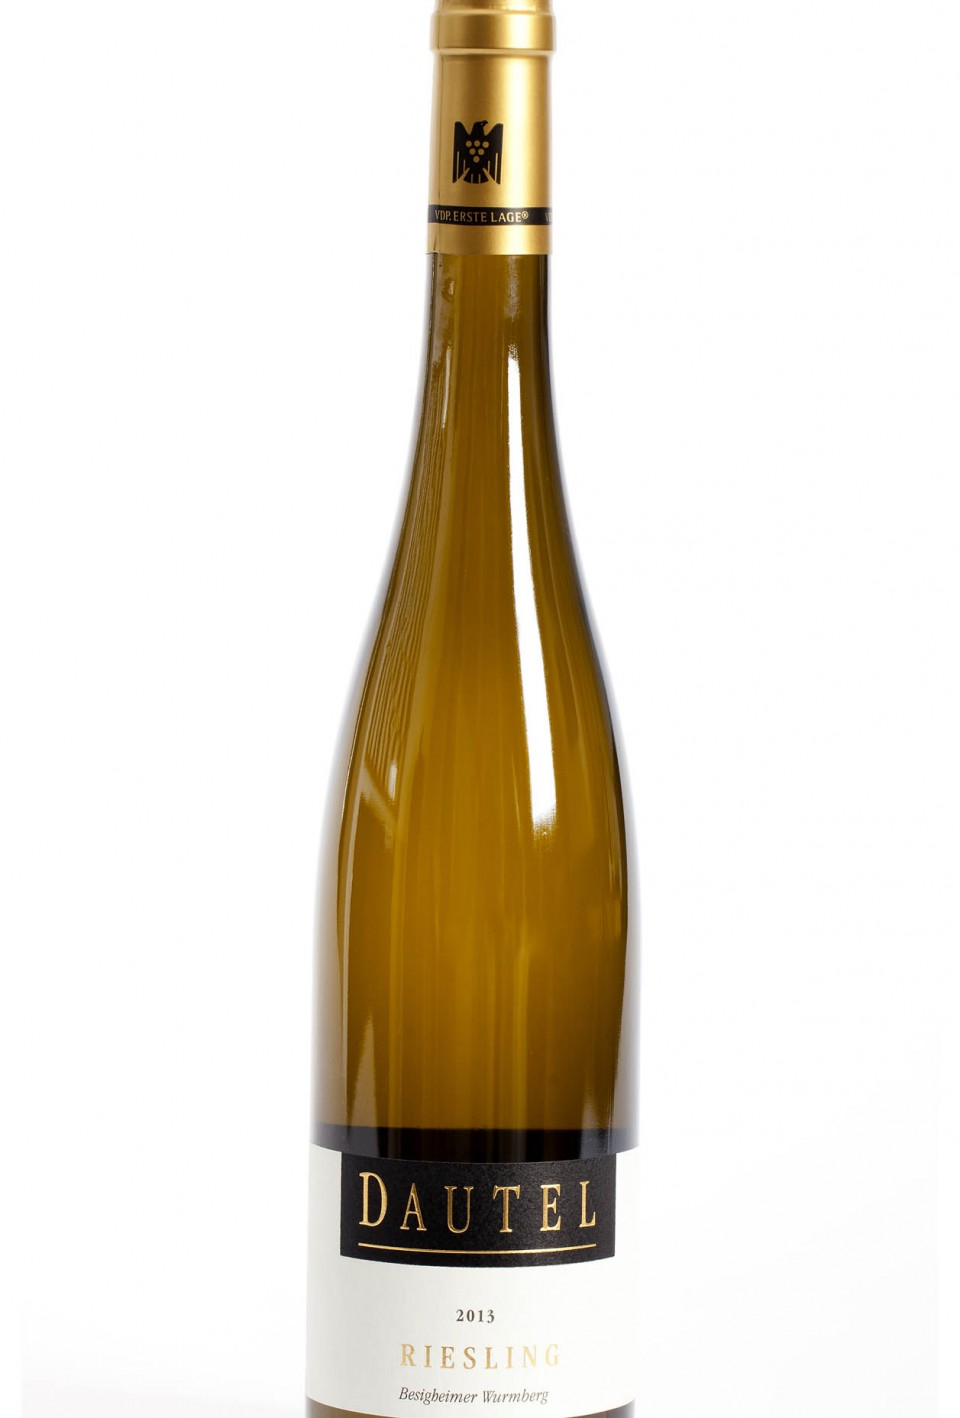 18. Ceviche Dautel Riesling1228